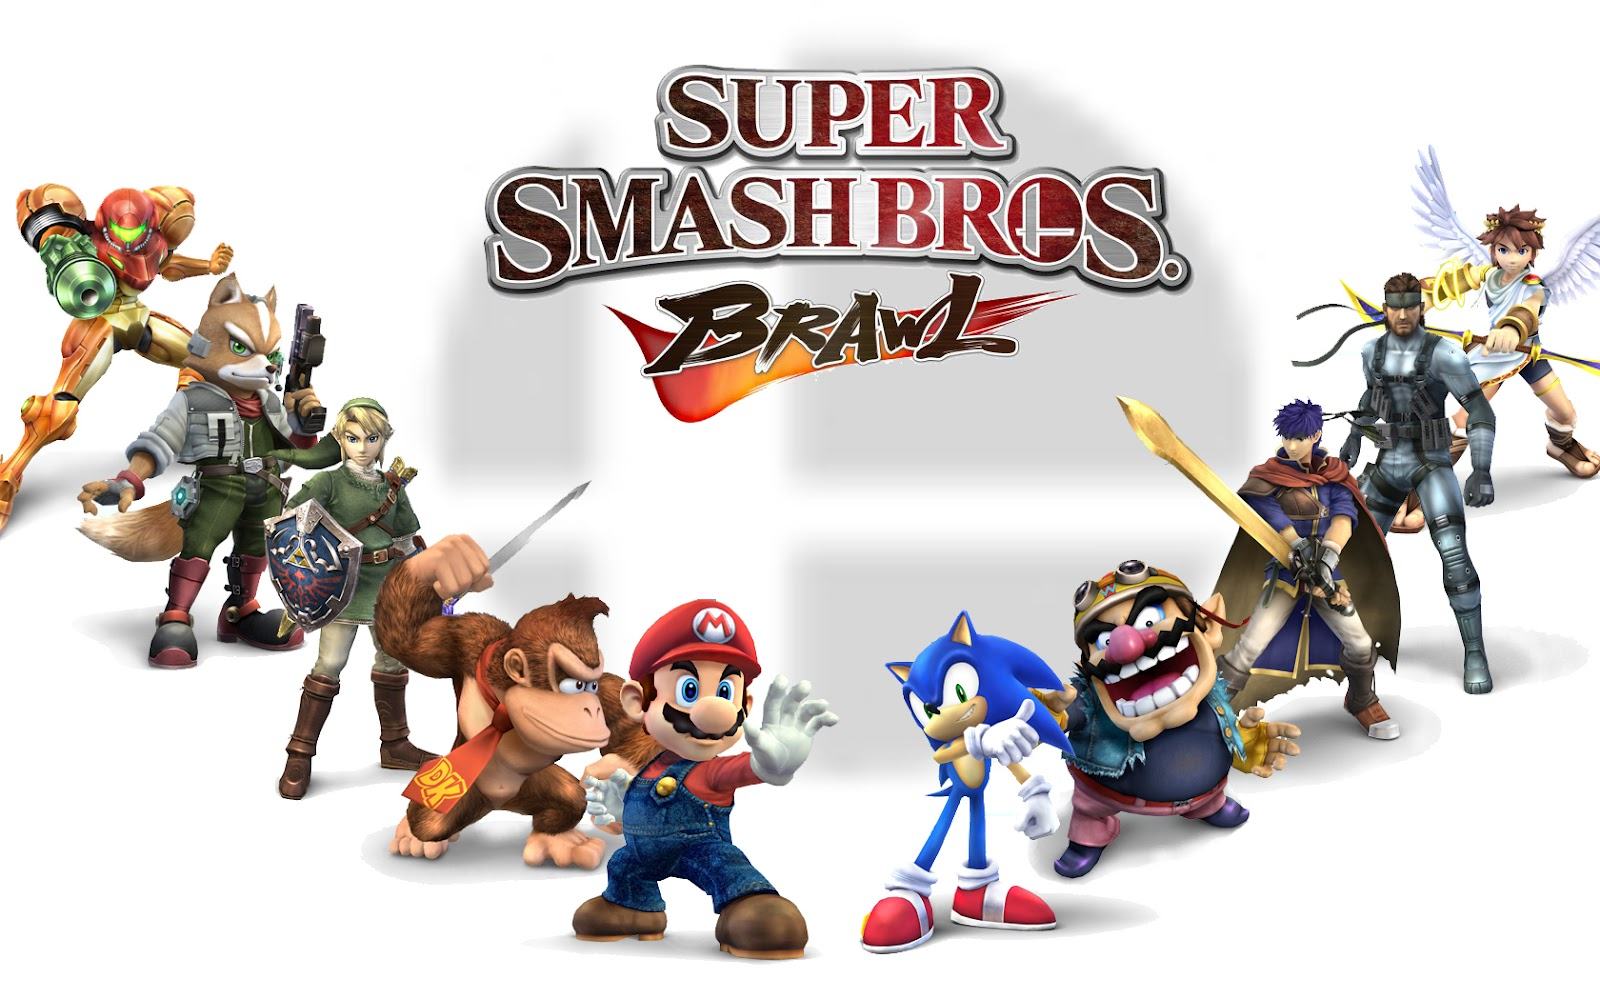 http://3.bp.blogspot.com/-ZrFAkd11BEo/UAlDi7qitNI/AAAAAAAABx8/zKQHcZeKceQ/s1600/super+smash+brothers+brawl+ssbb+wallpaper+background+characters+roaster+nintendo+game.jpg